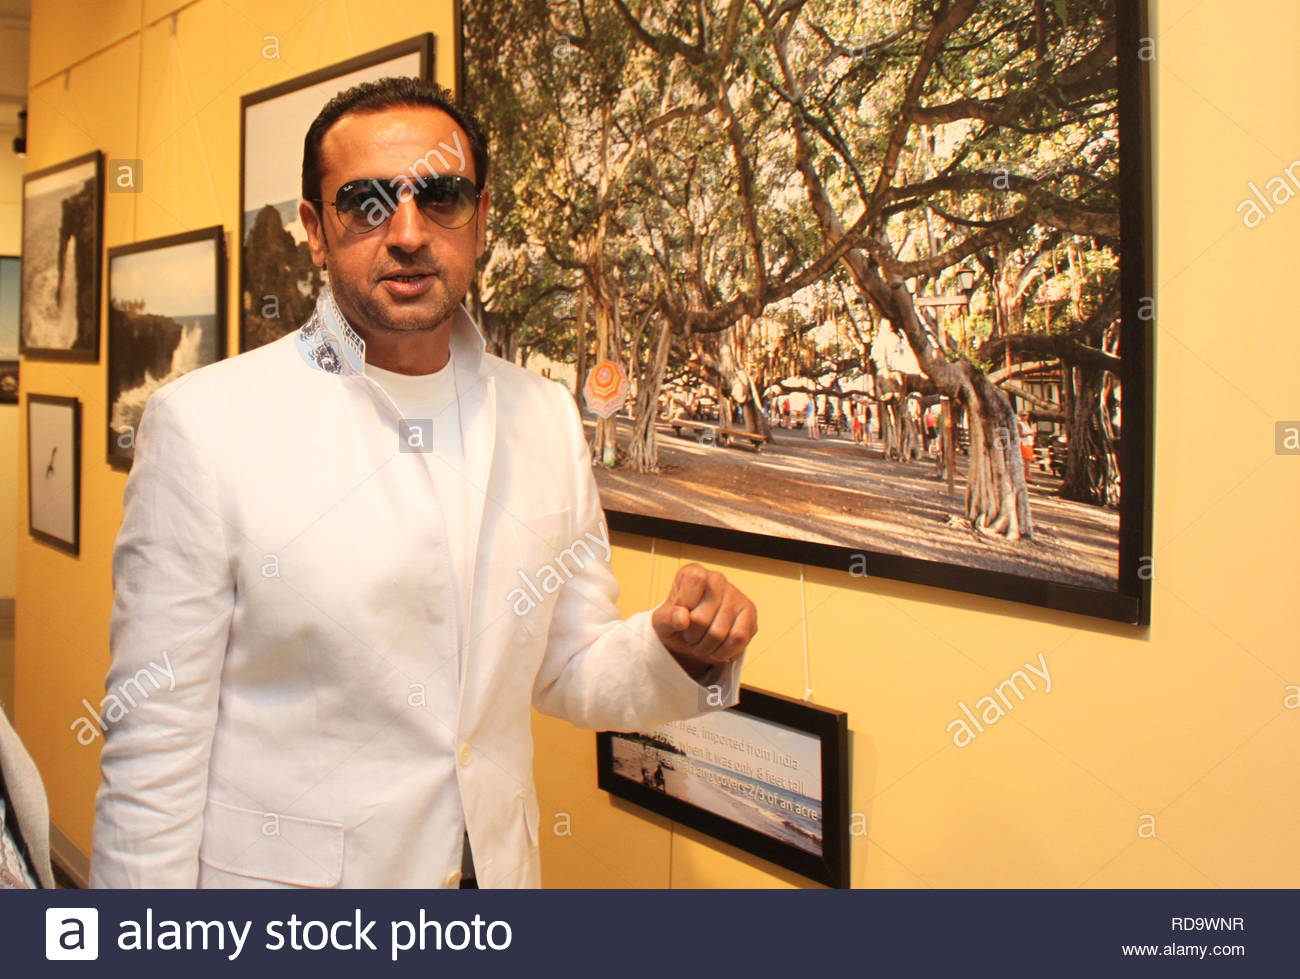 Bollywood actor Gulshan Grover at the inauguration of Homeopath Dr Mukesh Batra's (not in picture) 8th annual charity photgraphy exhibition in Mumbai, India on September 13, 2012. (SOLARIS IMAGES) - Stock Image